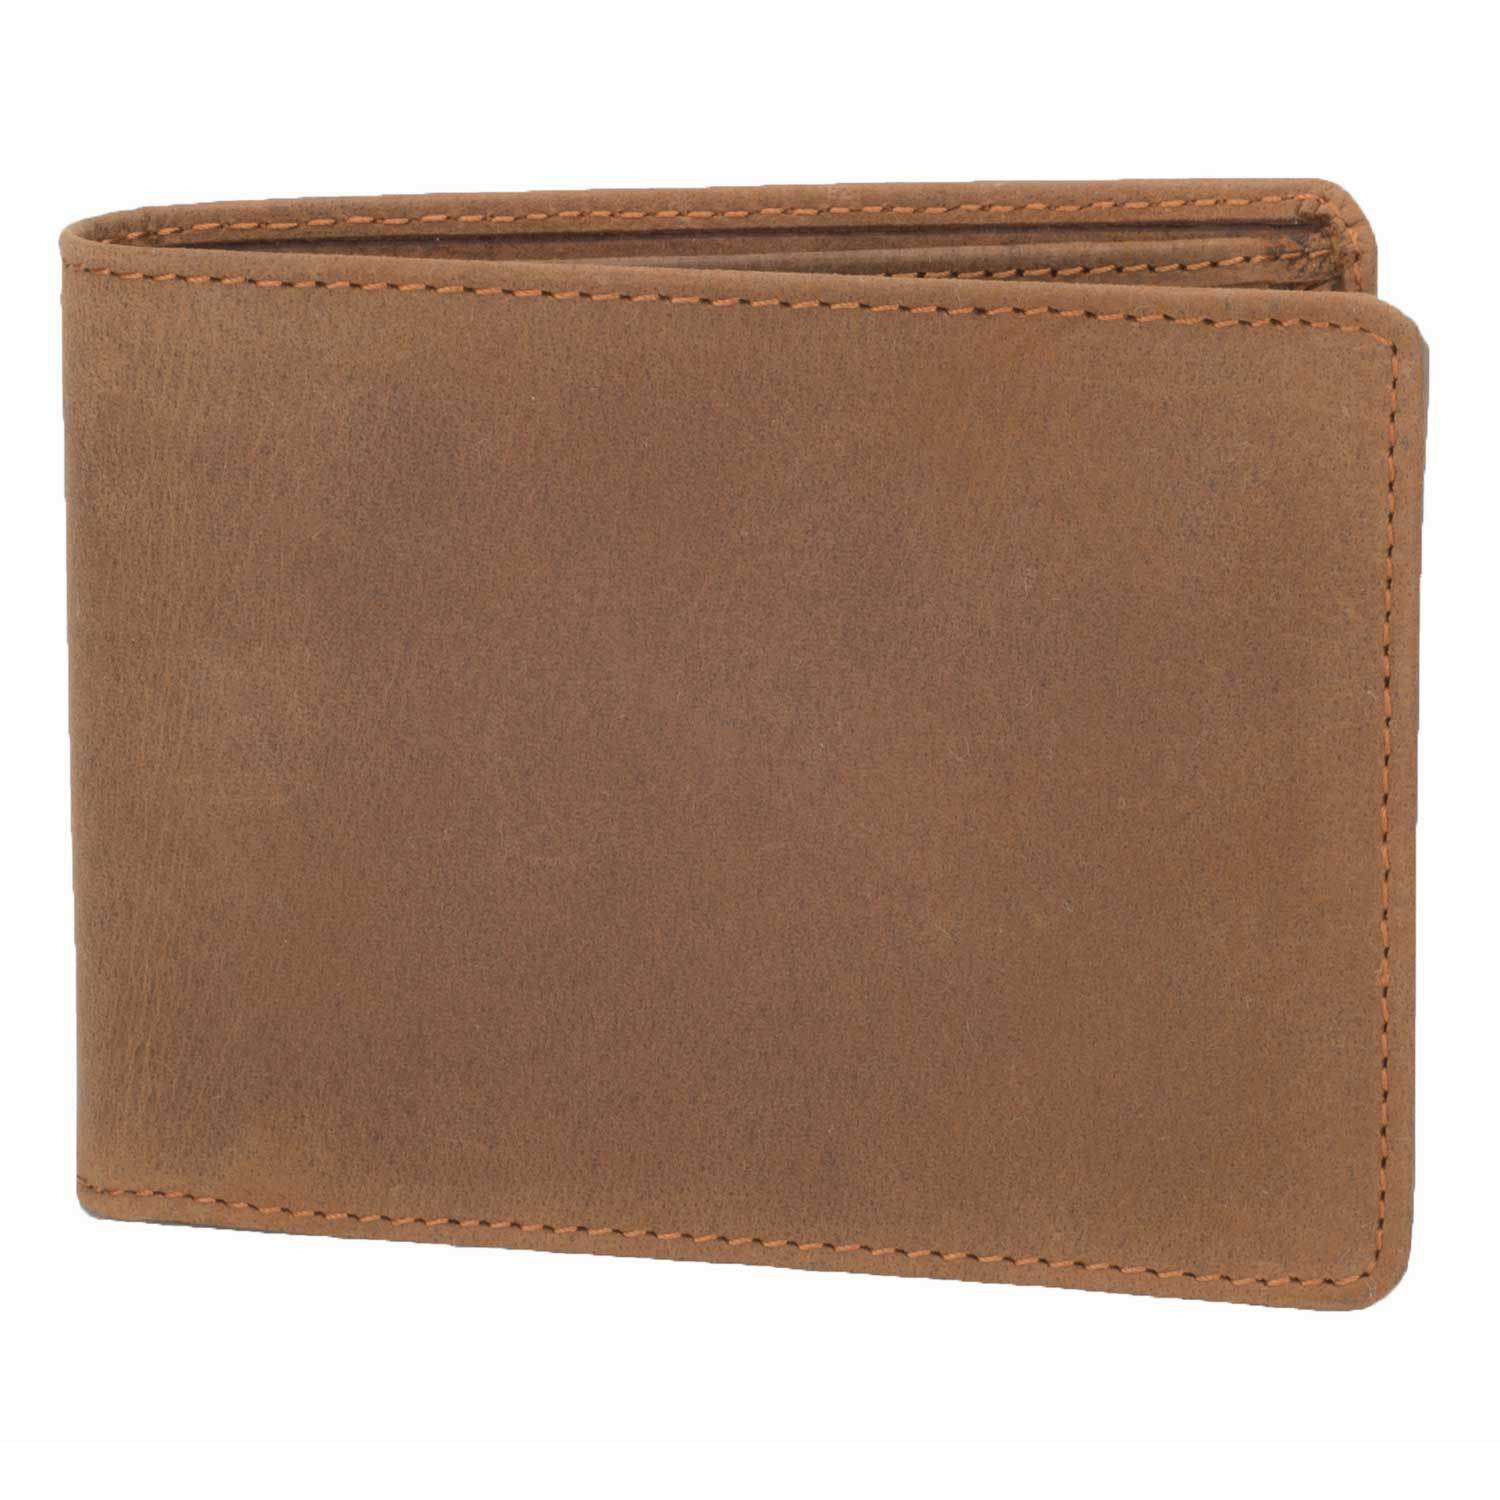 DiLoro Men's Leather Bifold Flip ID Zip Coin Wallet with RFID Protection in (Light) Hunter Brown